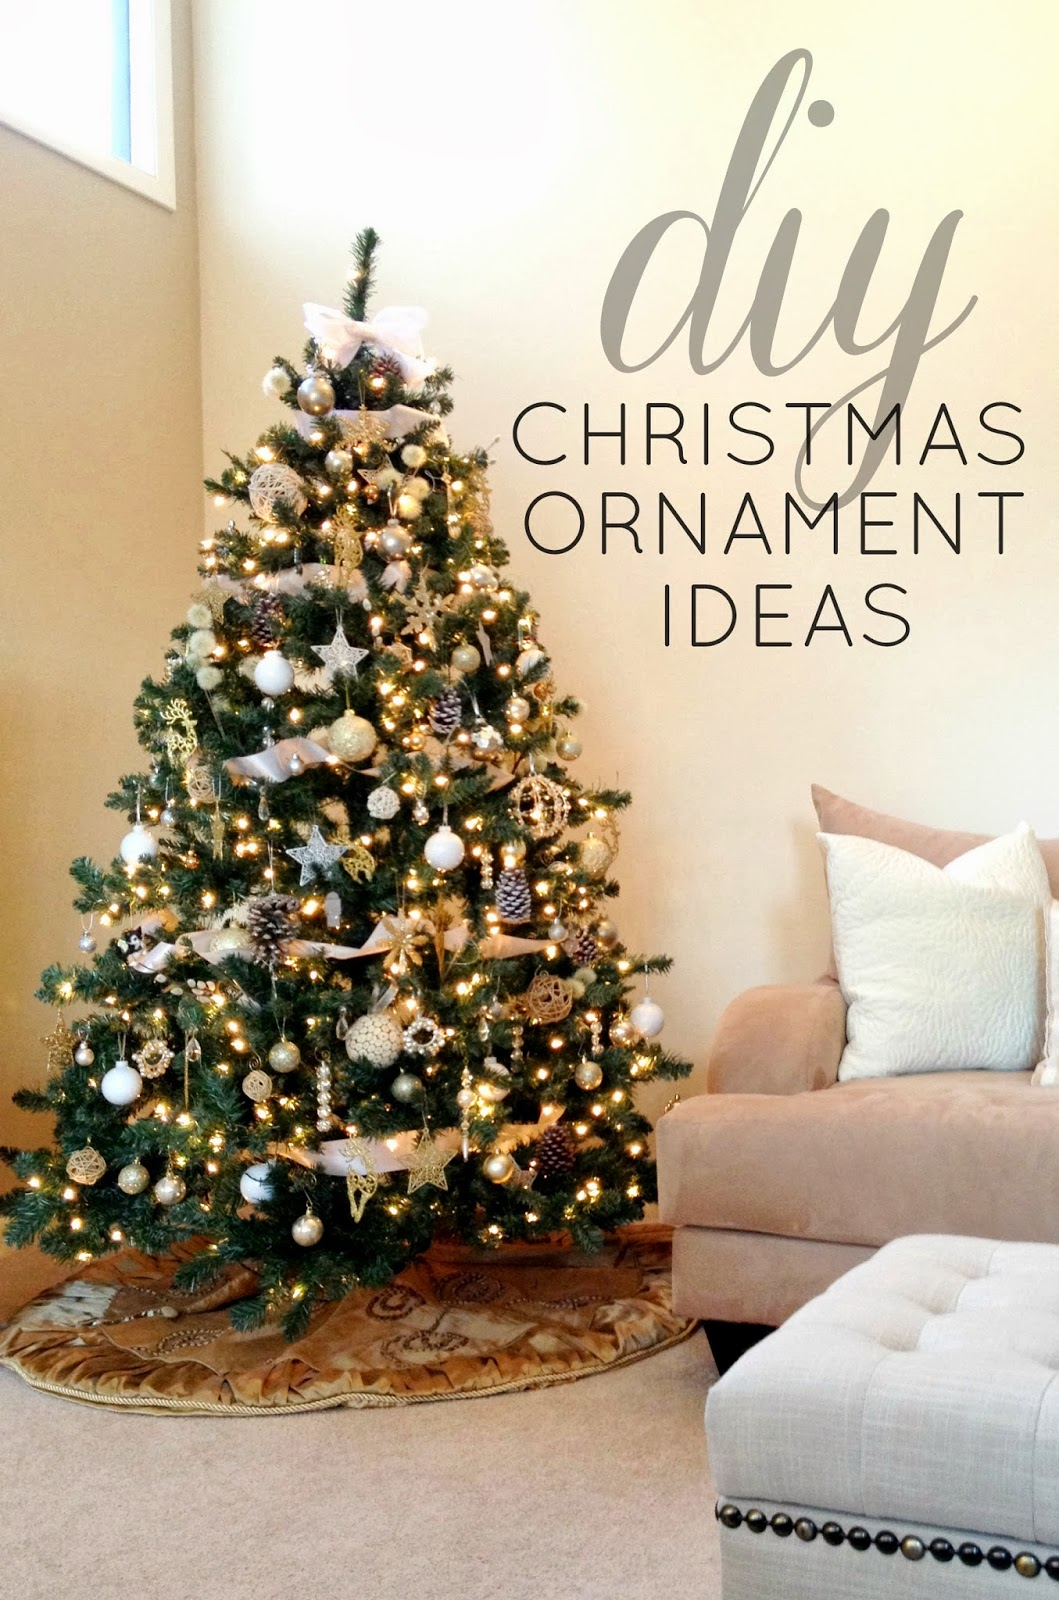 Christmas Decoration Ideas 2012 livelovediy: diy christmas ornaments ideas